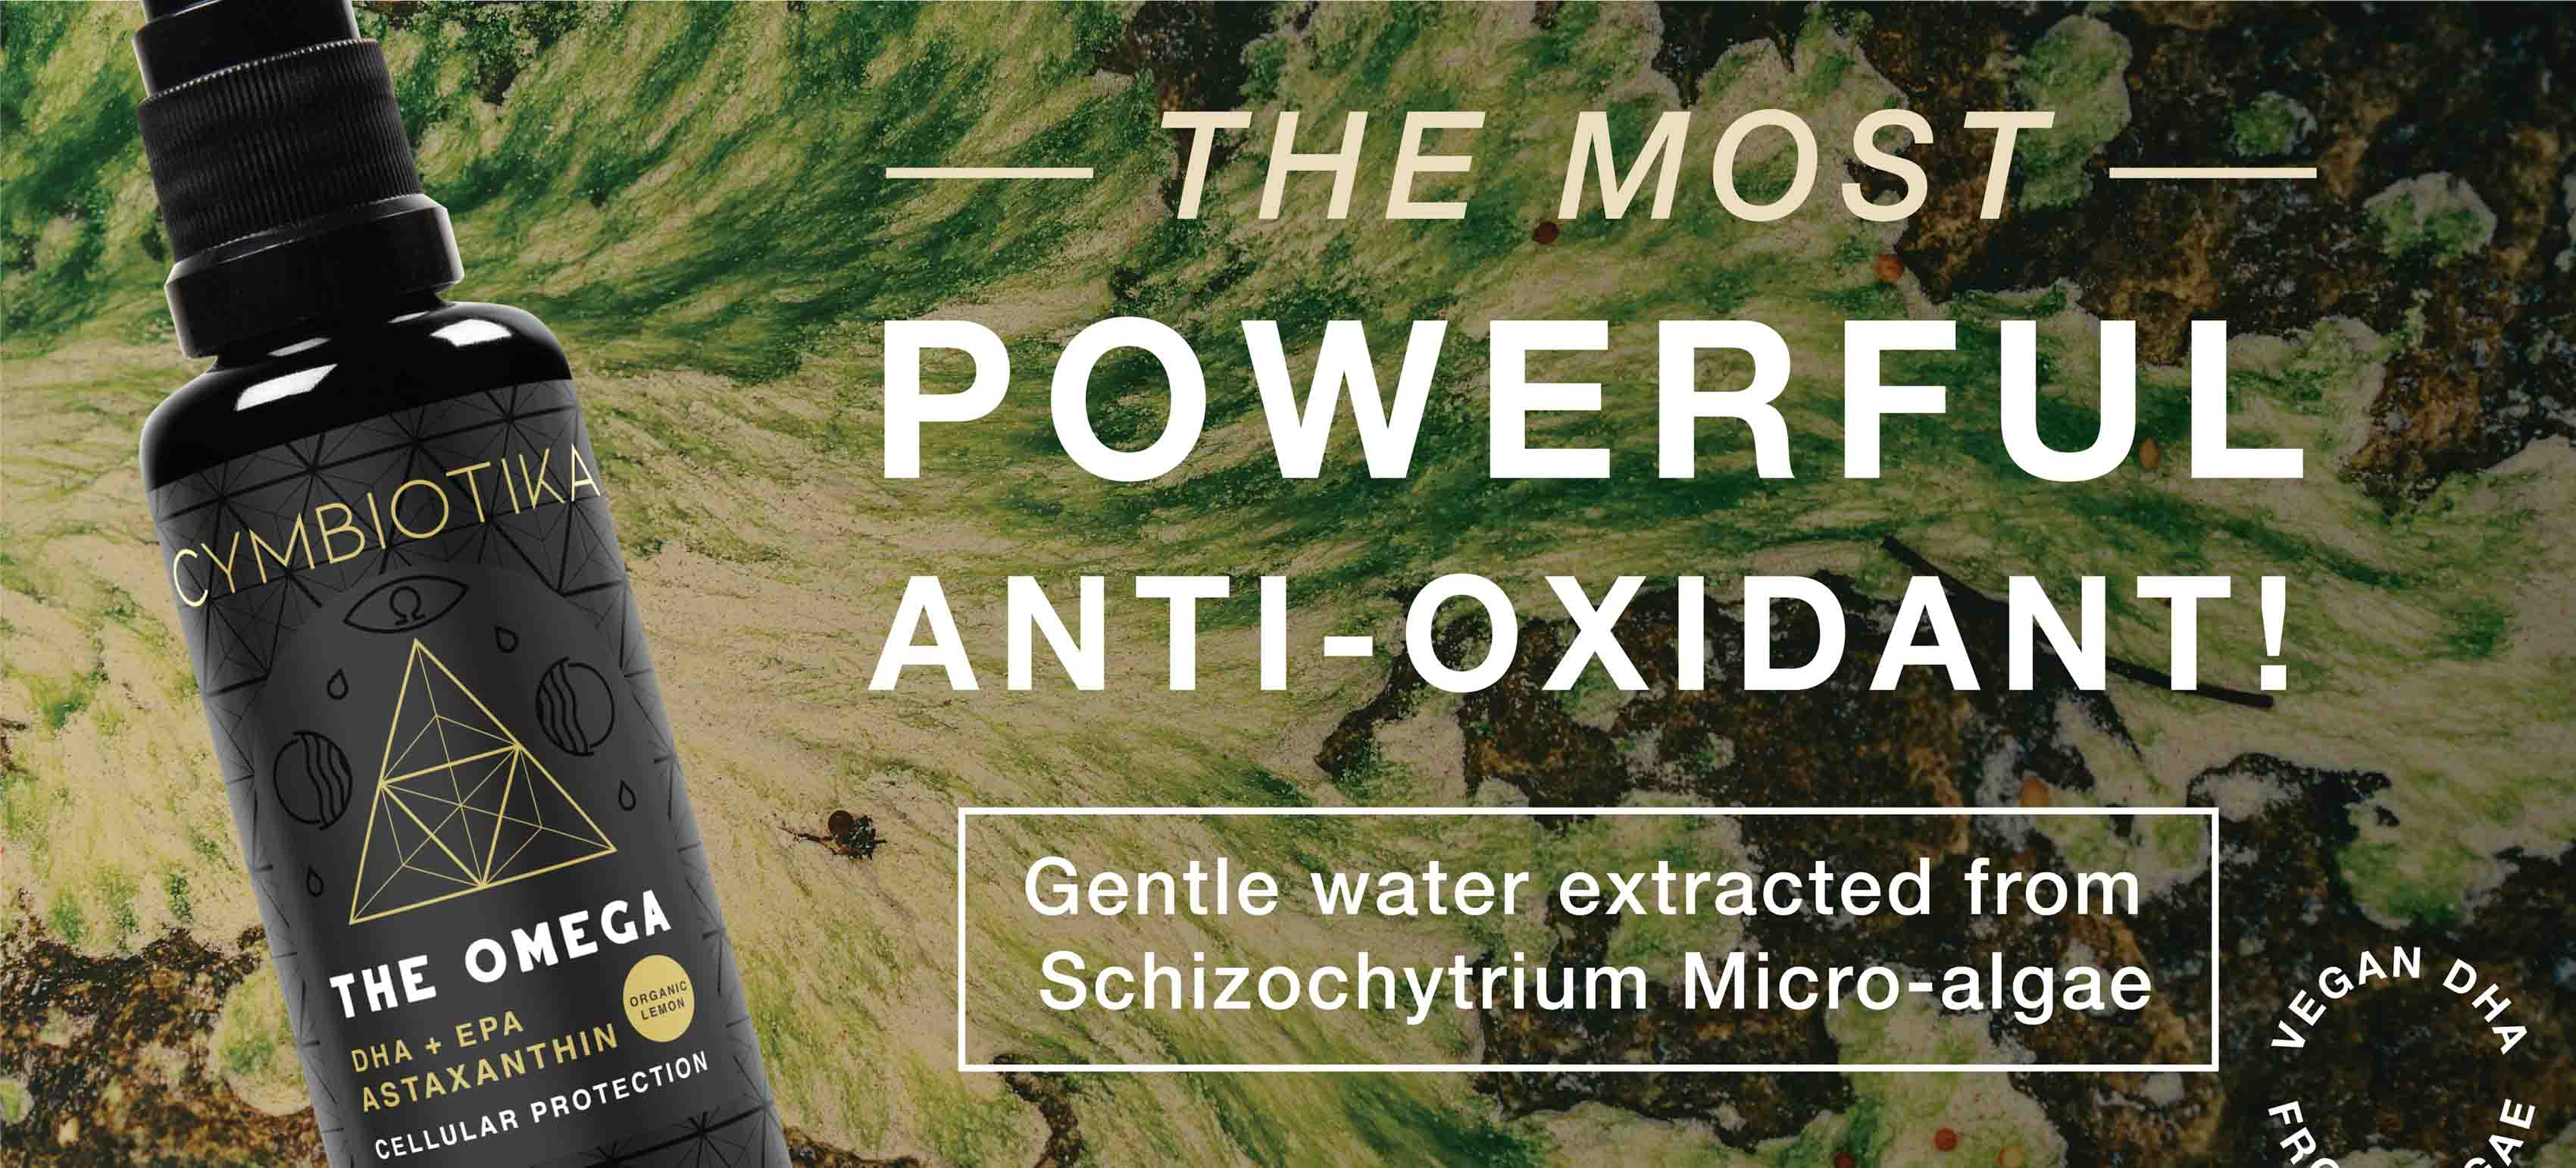 The most powerful antioxidant with gentle water extracted from Schizochytrium Micro-algae.